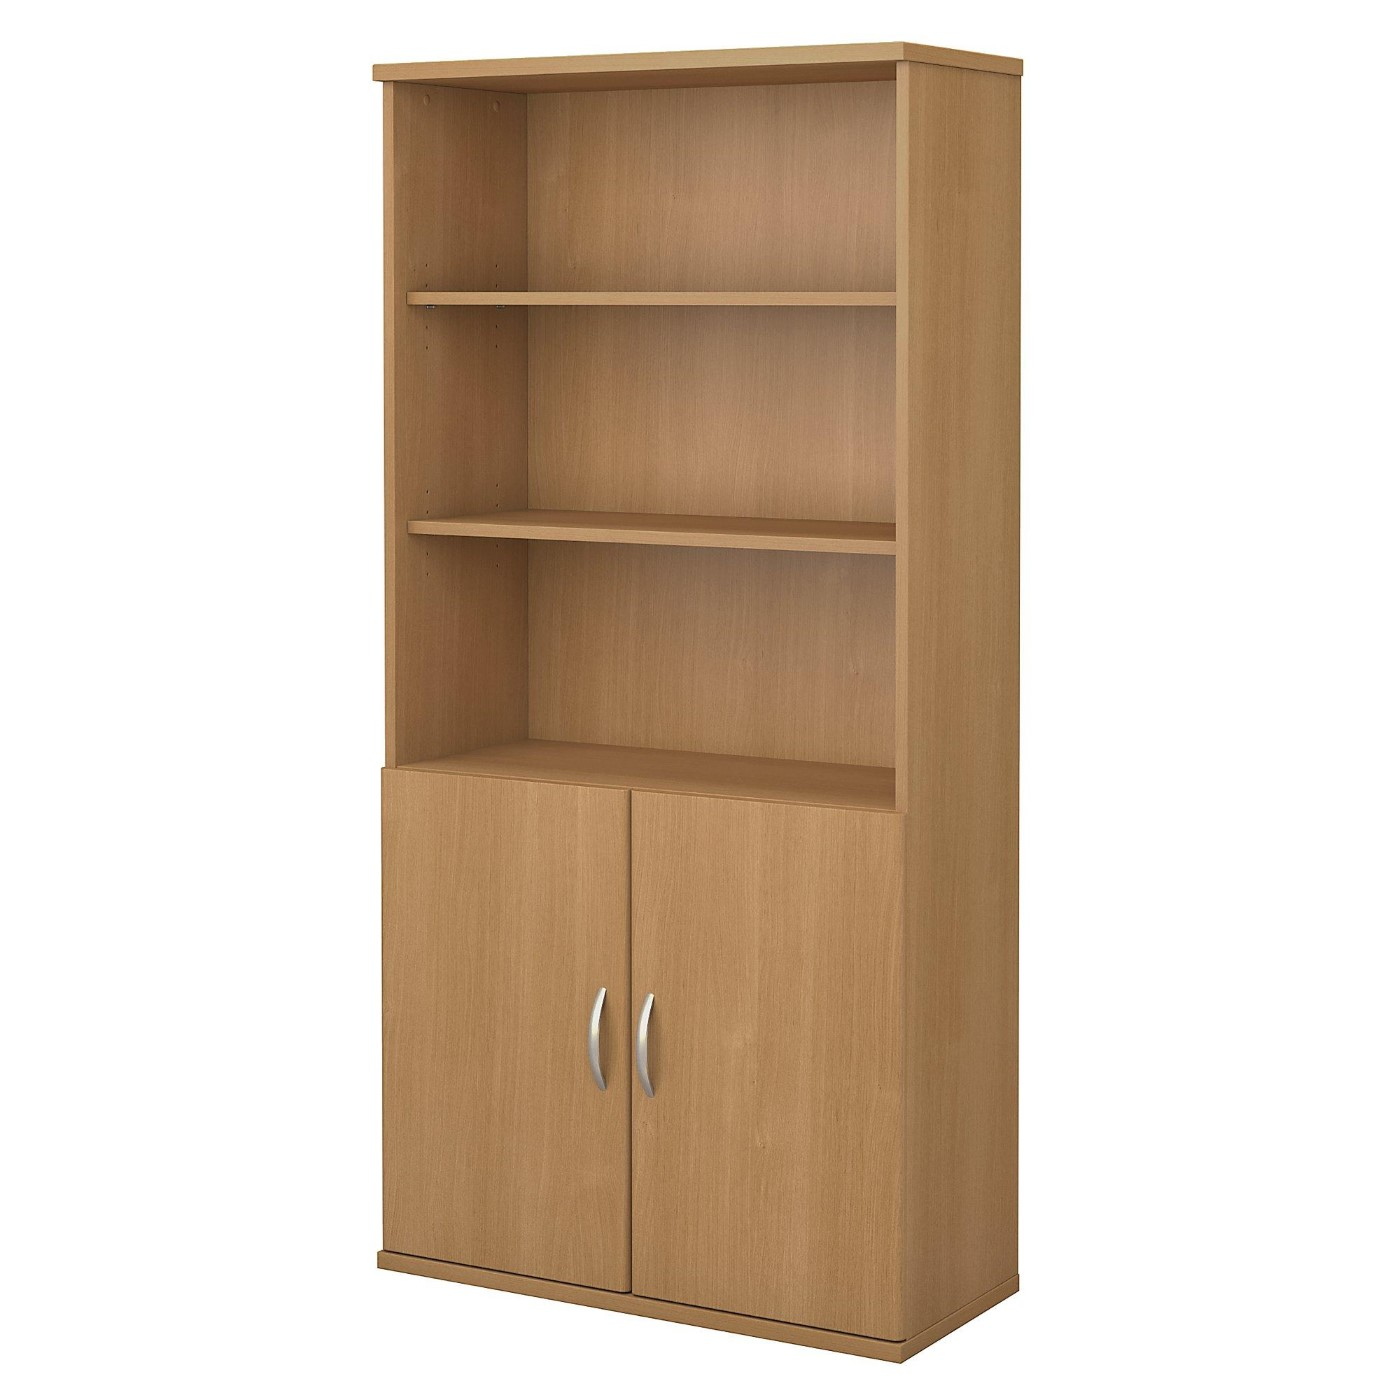 <font color=#c60><b>BUSH BUSINESS FURNITURE SERIES C 36W 5 SHELF BOOKCASE WITH DOORS. FREE SHIPPING</font></b>